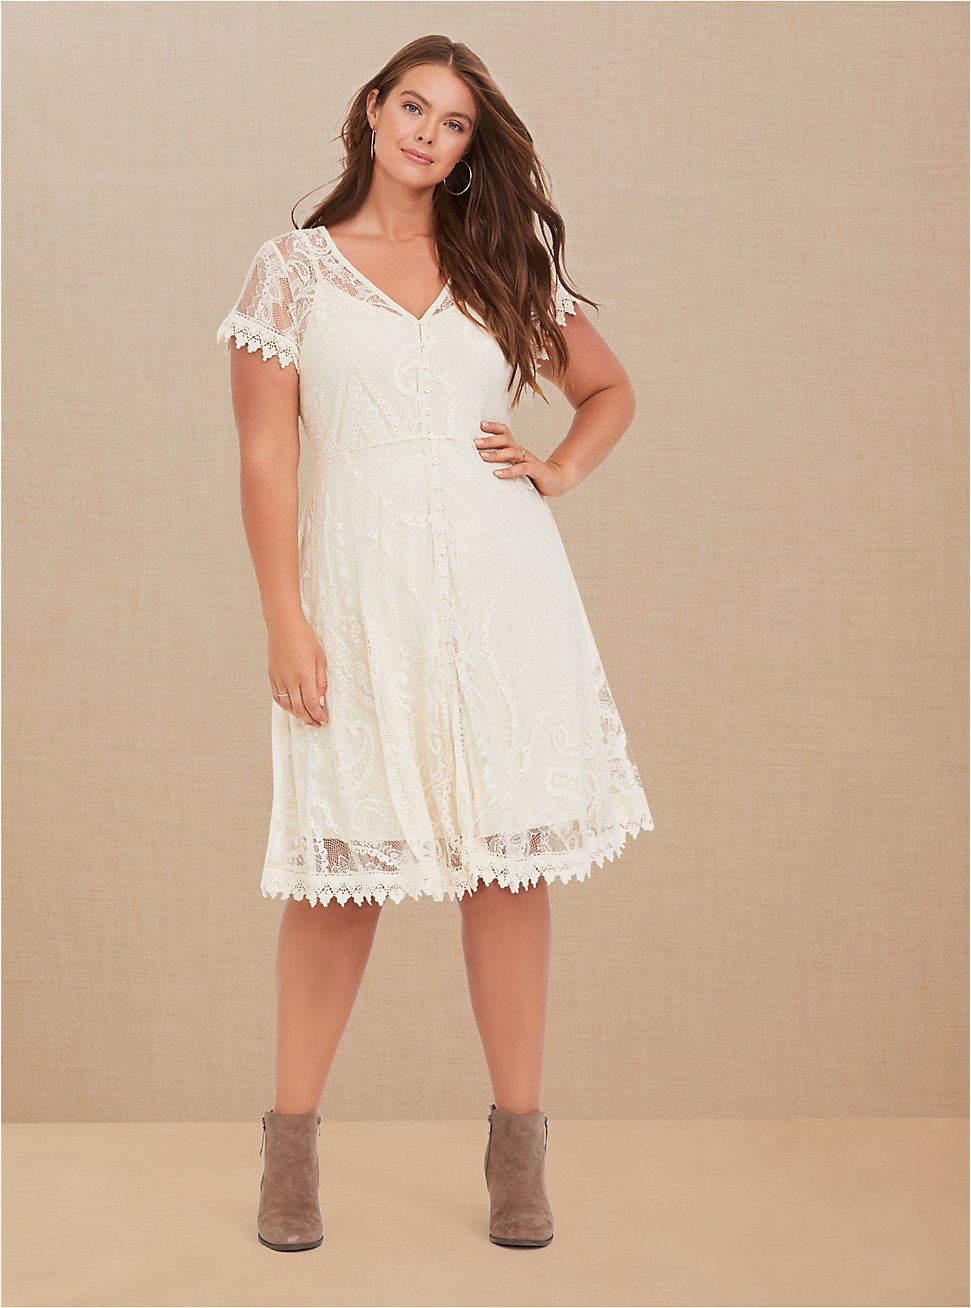 Ivory Lace & Crochet Button Front Dress, BIRCH, hi-res